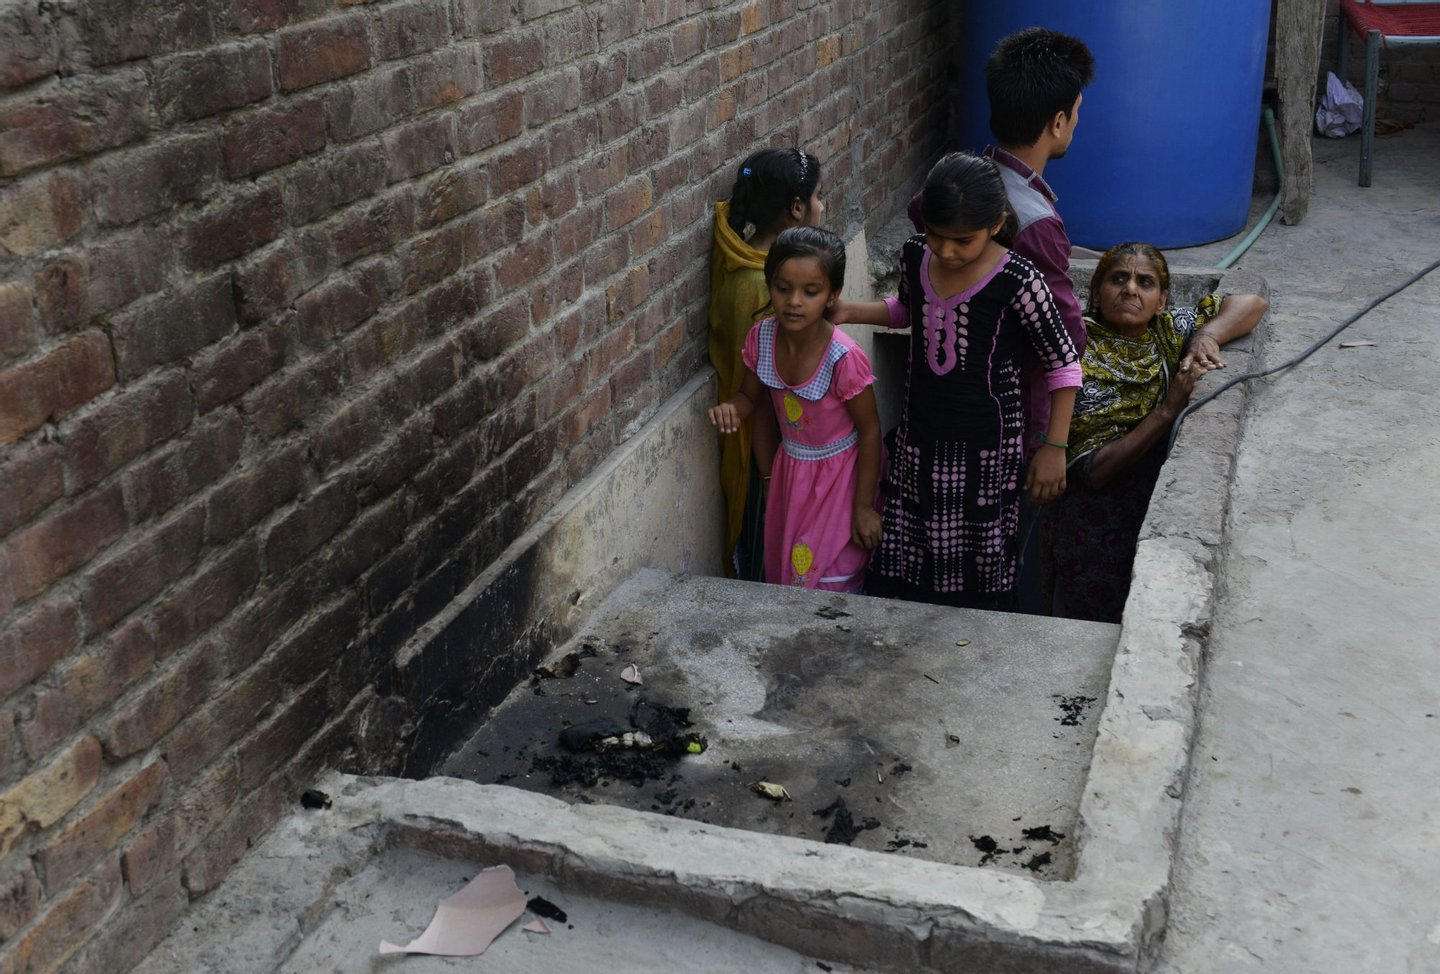 """Pakistani residents stand at the site where a teenager was burnt alive by her mother in Lahore on June 8, 2016. A Pakistani mother on June 8 burnt her 16-year-old daughter alive for marrying a man of her own choice, before running out her street to tell neighbours she had killed the teen for bringing shame to the family. It was the third so-called """"honour killing"""" in the South Asian country in as many months, and a rare example of the crime being carried out by a woman. / AFP / ARIF ALI (Photo credit should read ARIF ALI/AFP/Getty Images)"""